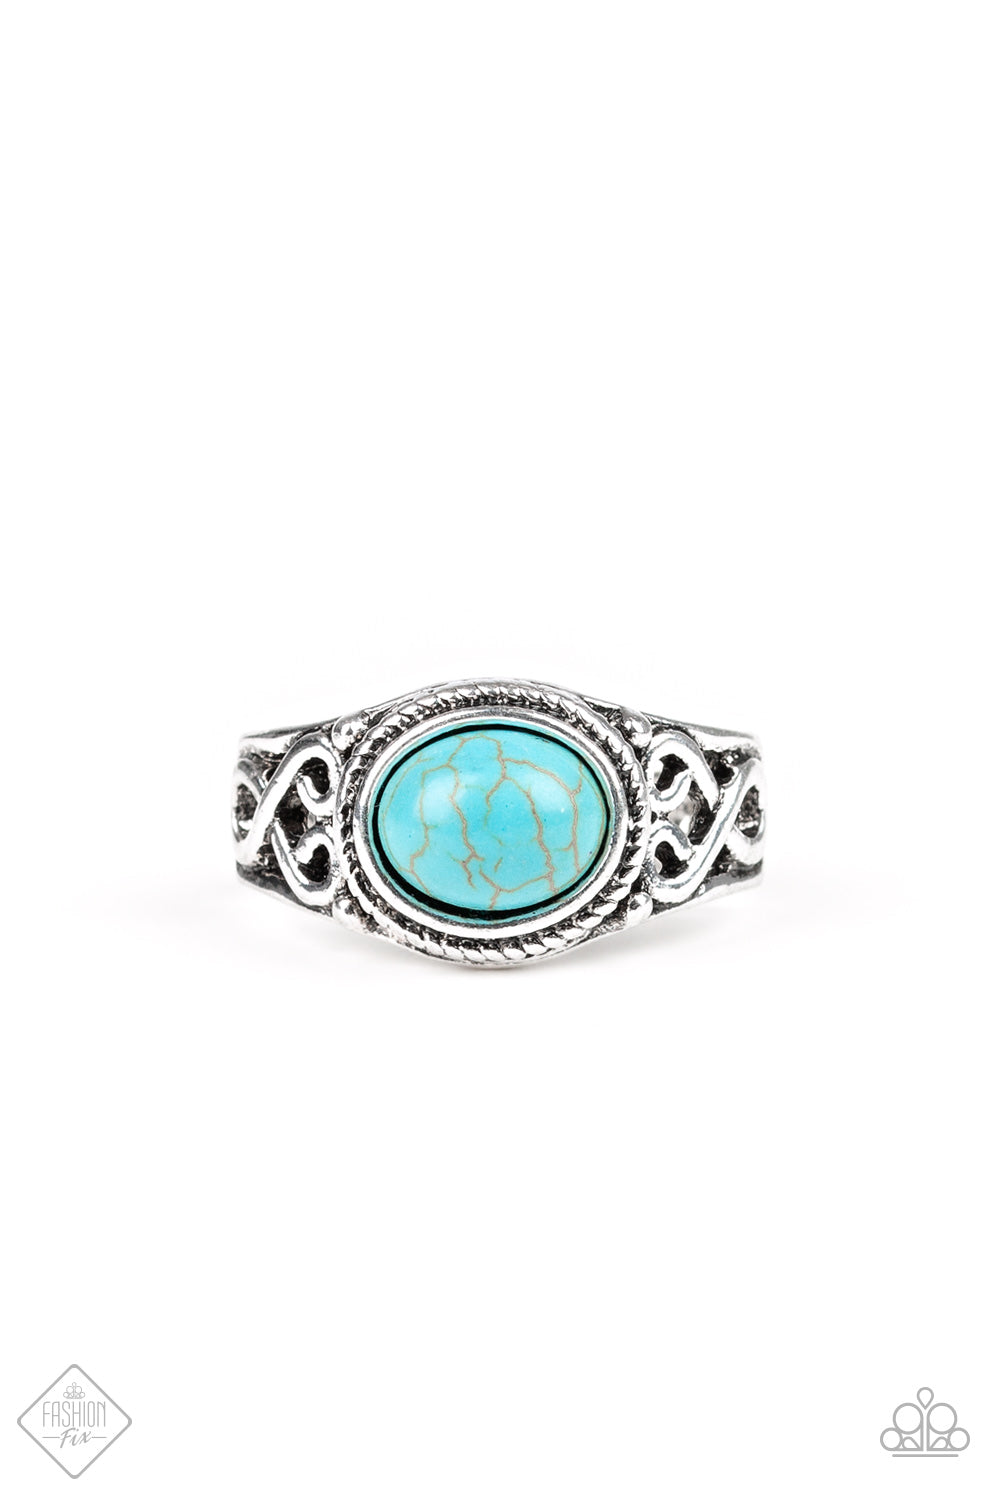 Set In Stone - Turquoise Ring - The Paparazzi Fox